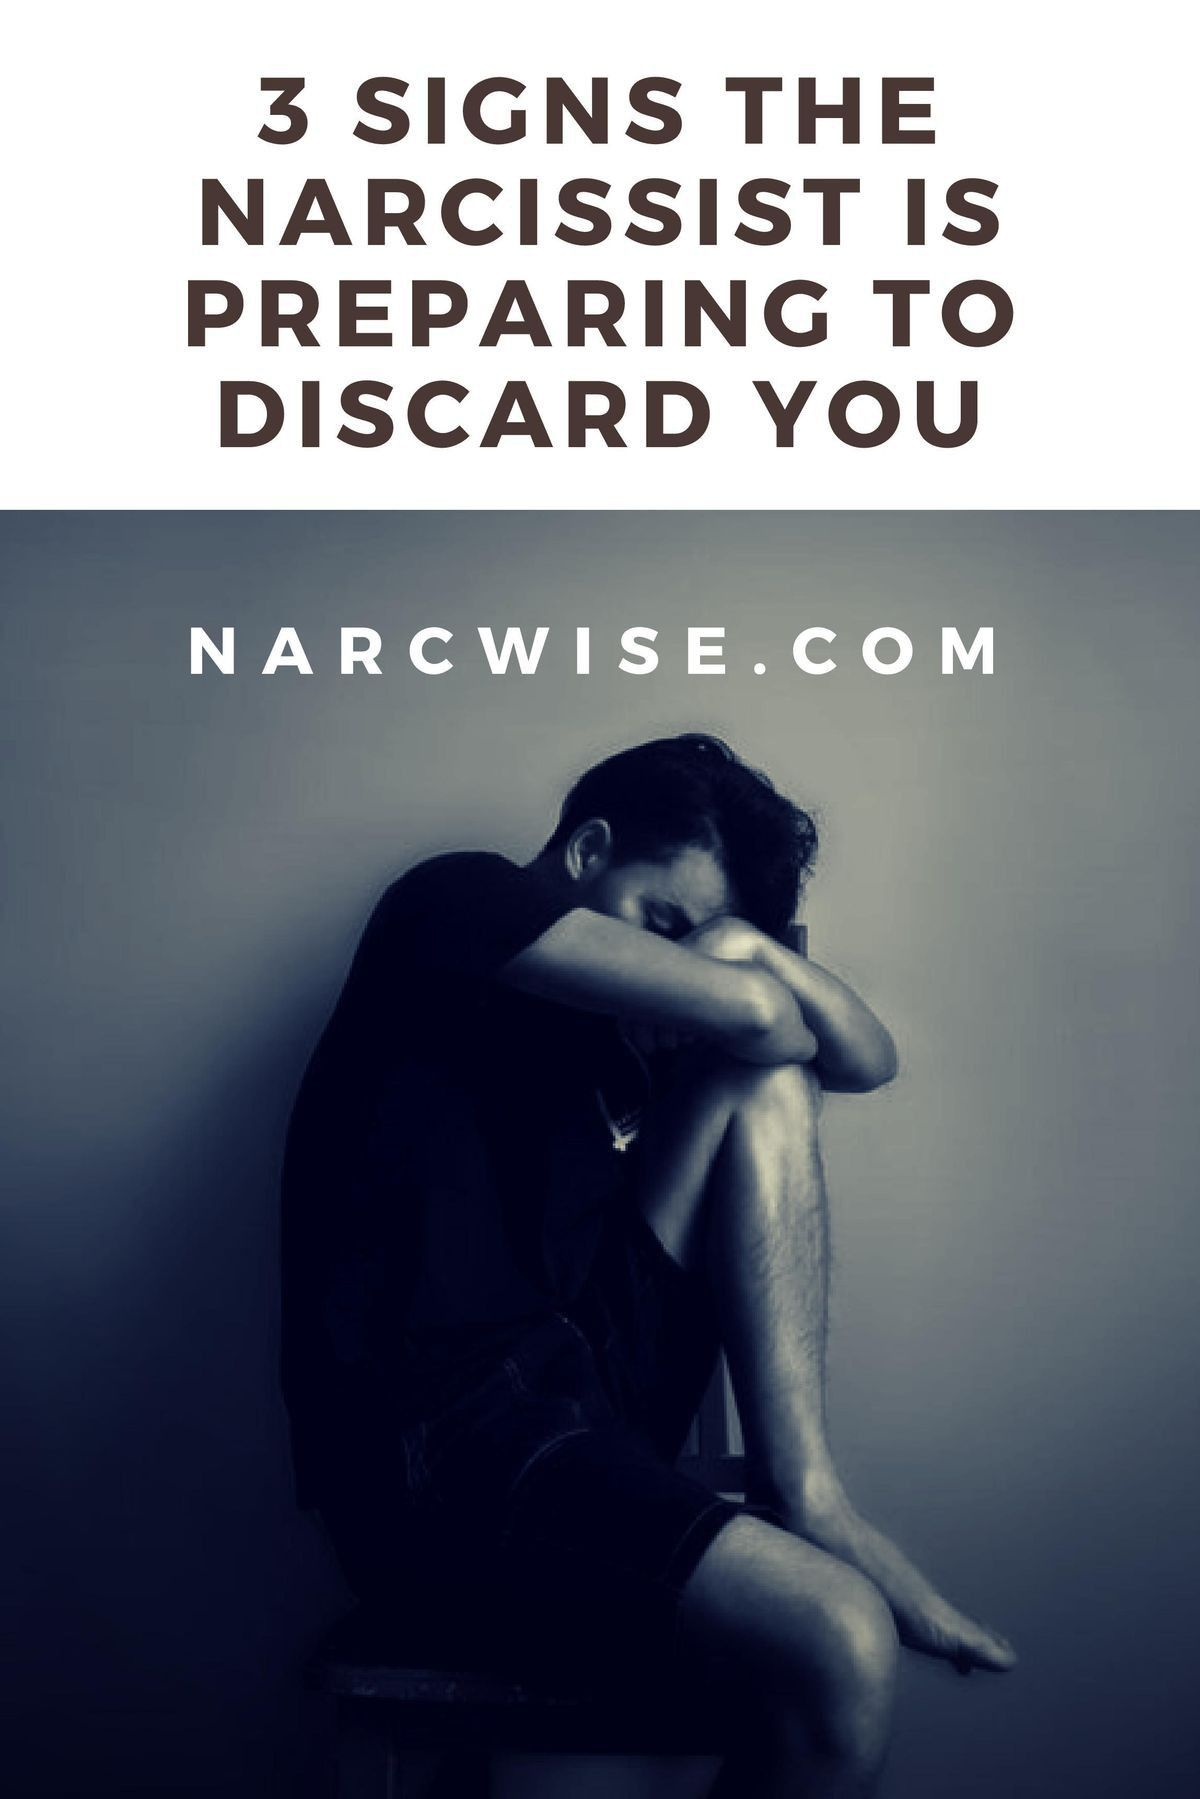 3 signs the narcissist is preparing to discard you | Toxic People